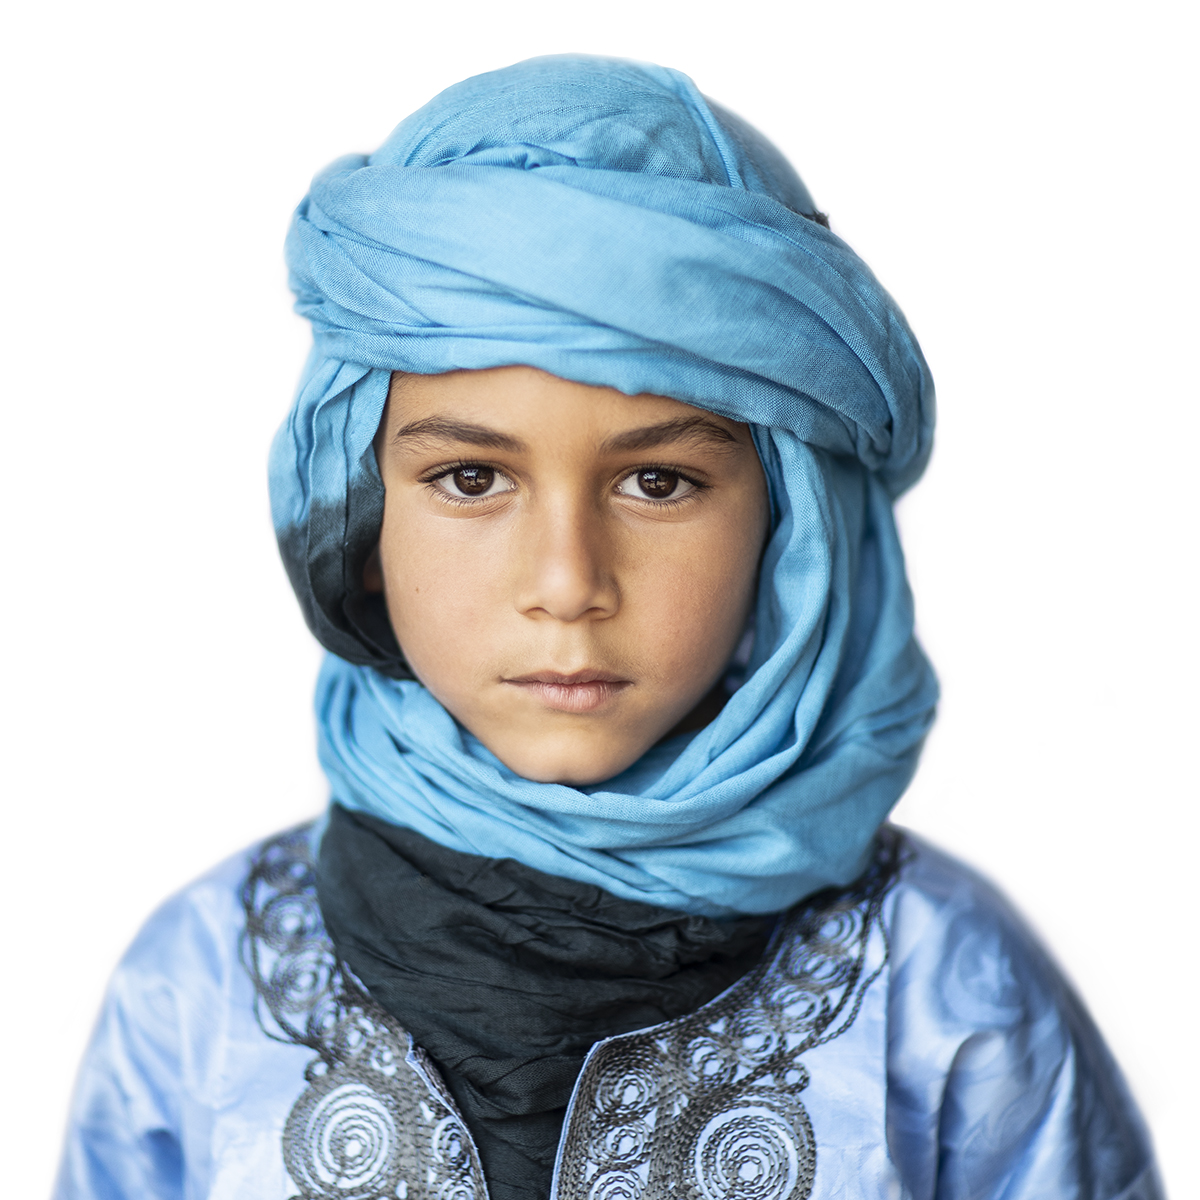 Moroccan Boy in Sahara